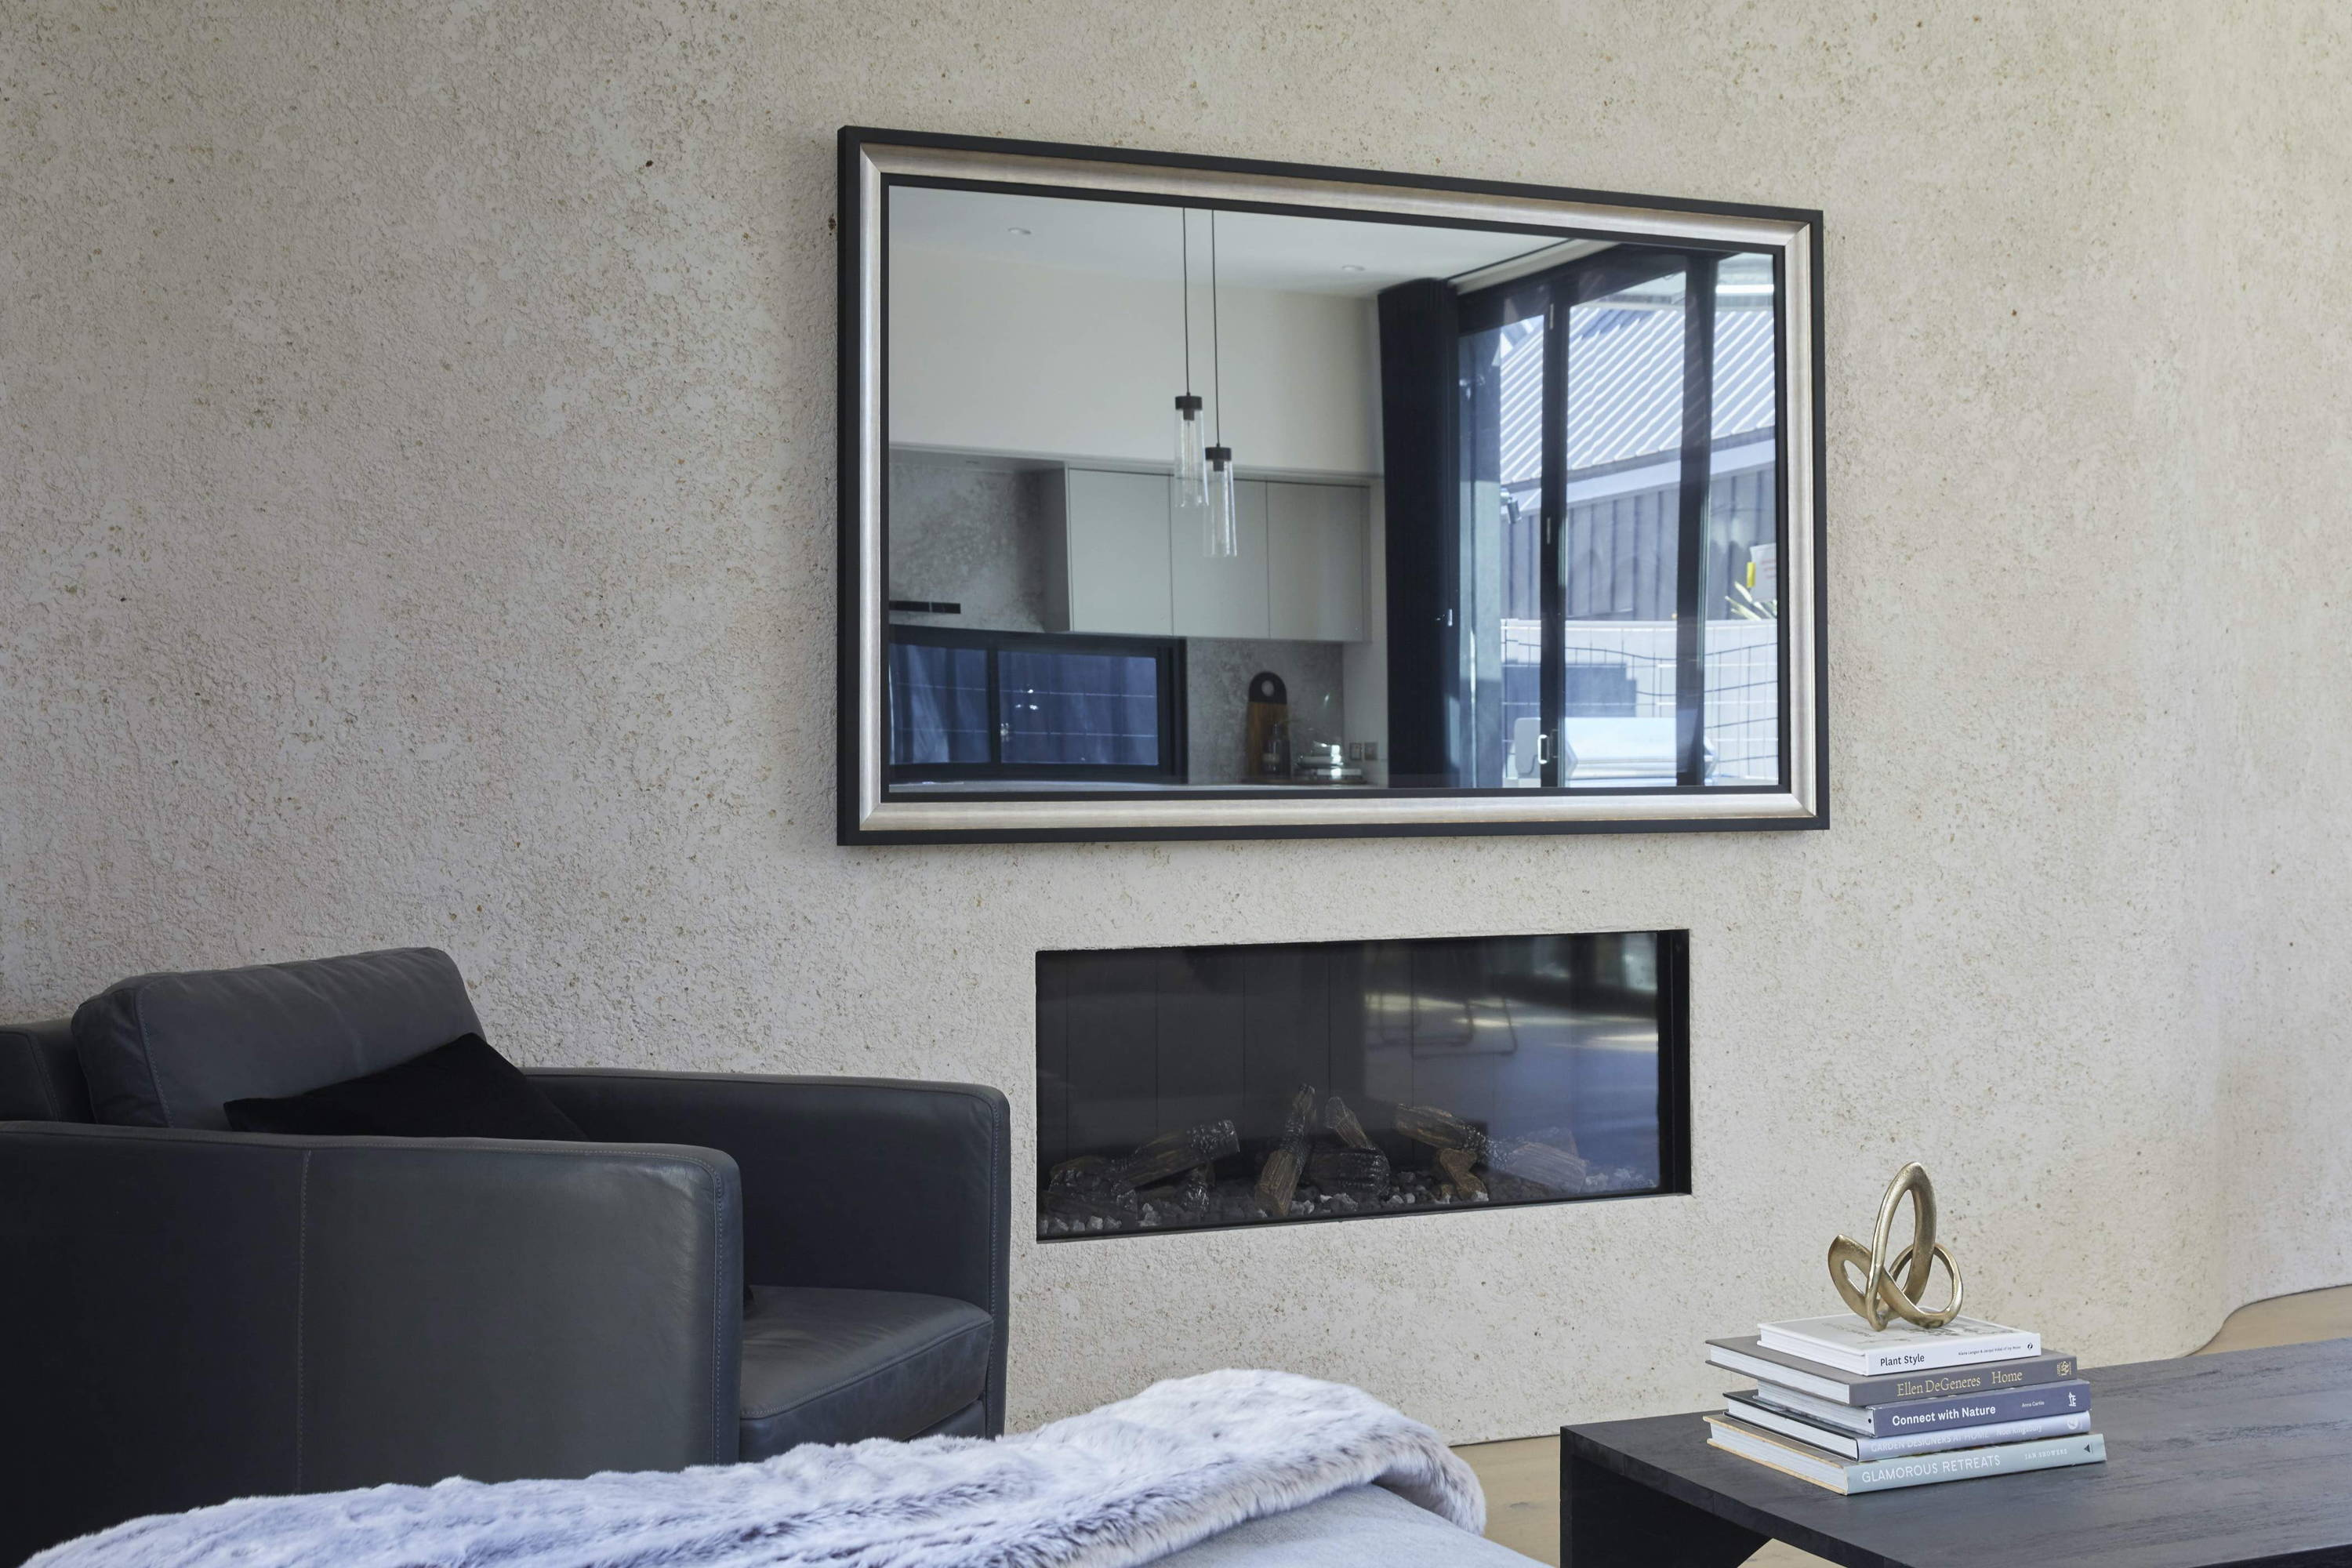 A TV-Mirror hanging on the wall of a coastal, elegant bedroom setting